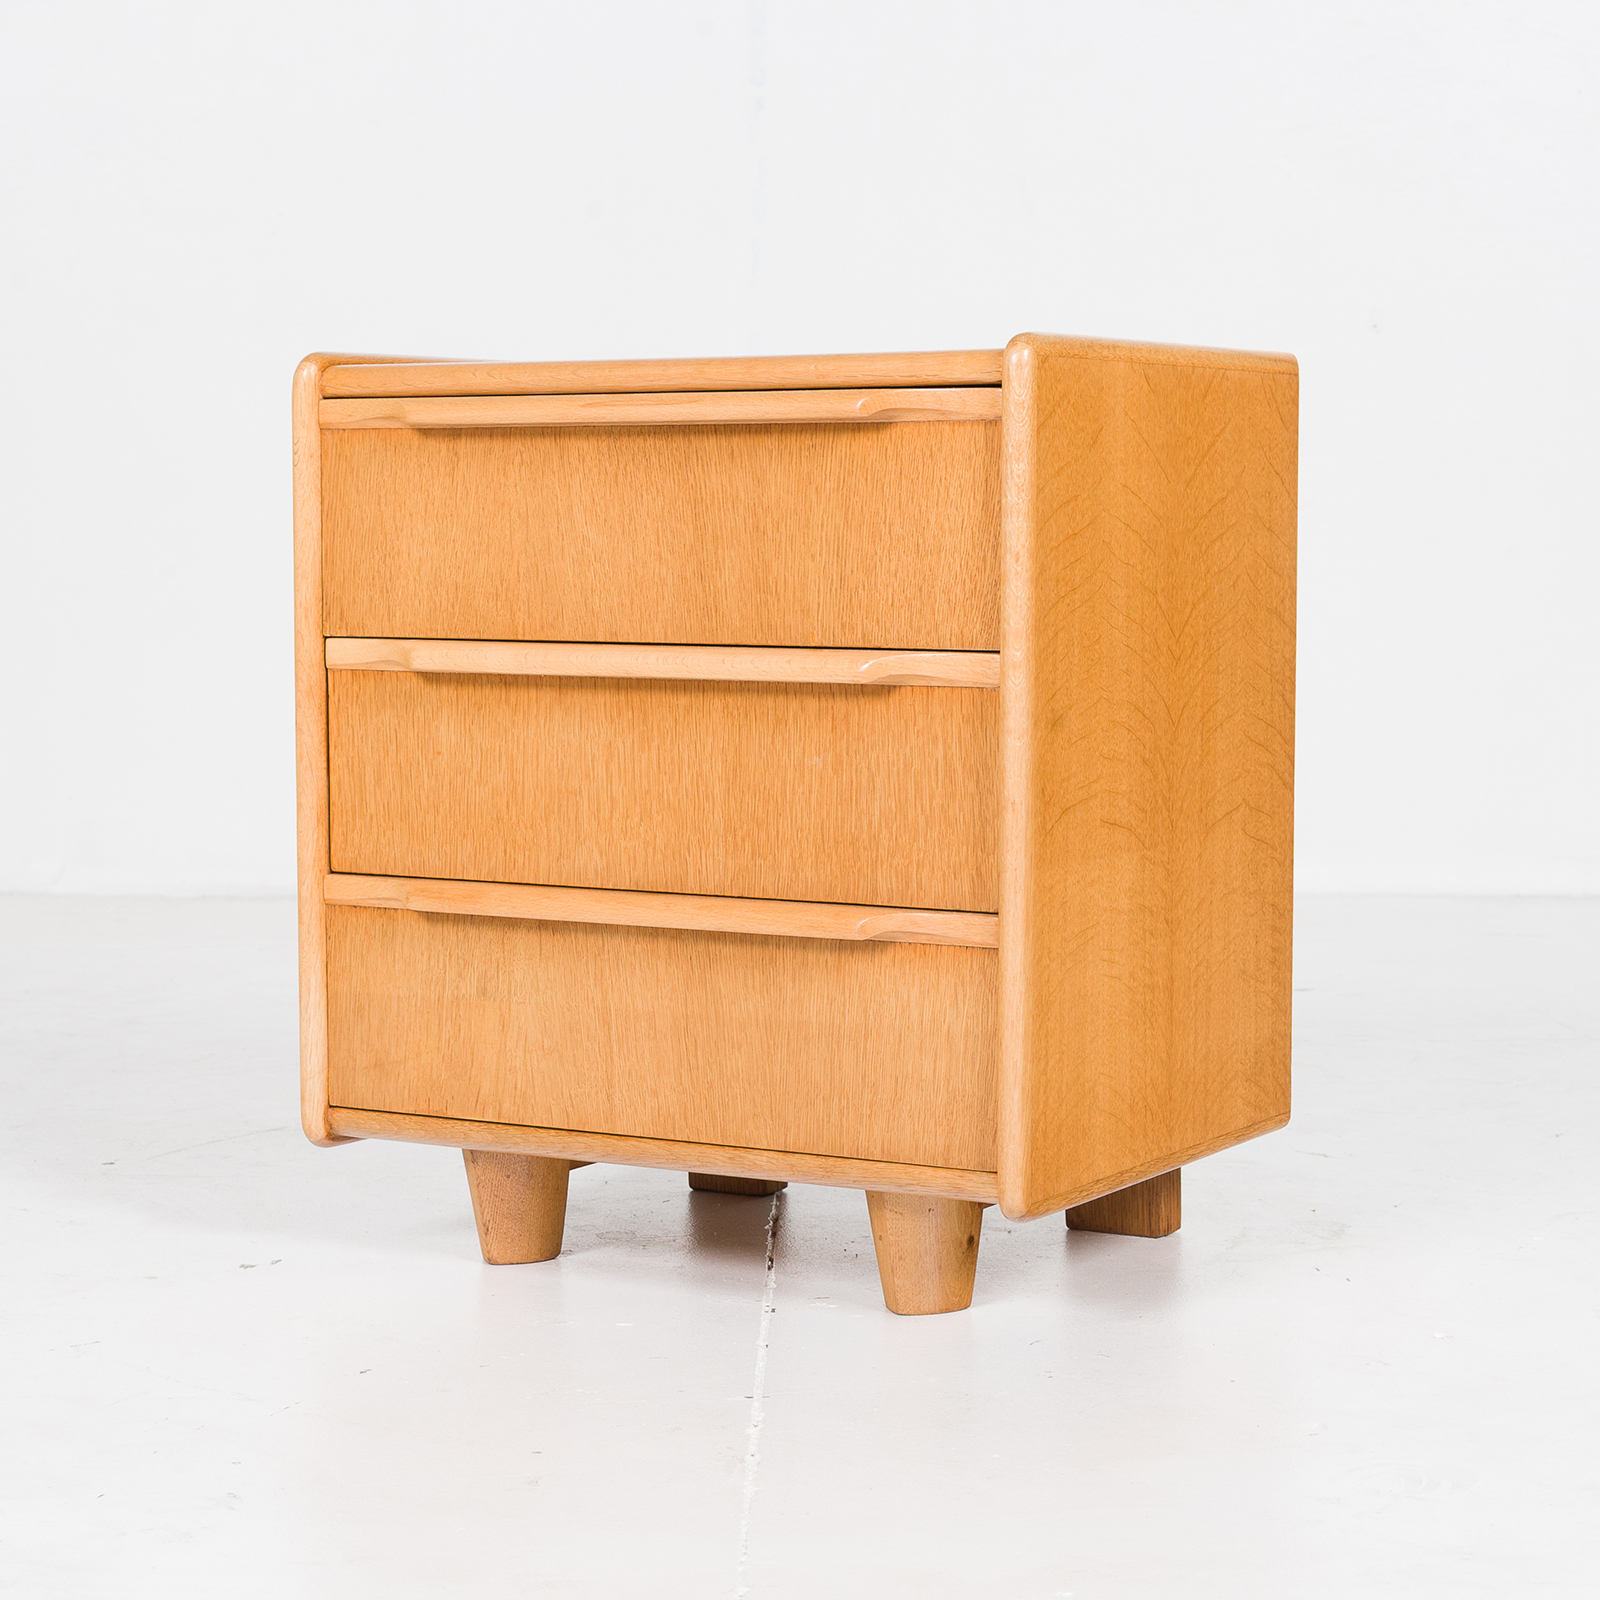 Oak Series Cabinet By Cees Braakman For Pastoe, 1950s, The Netherlands22